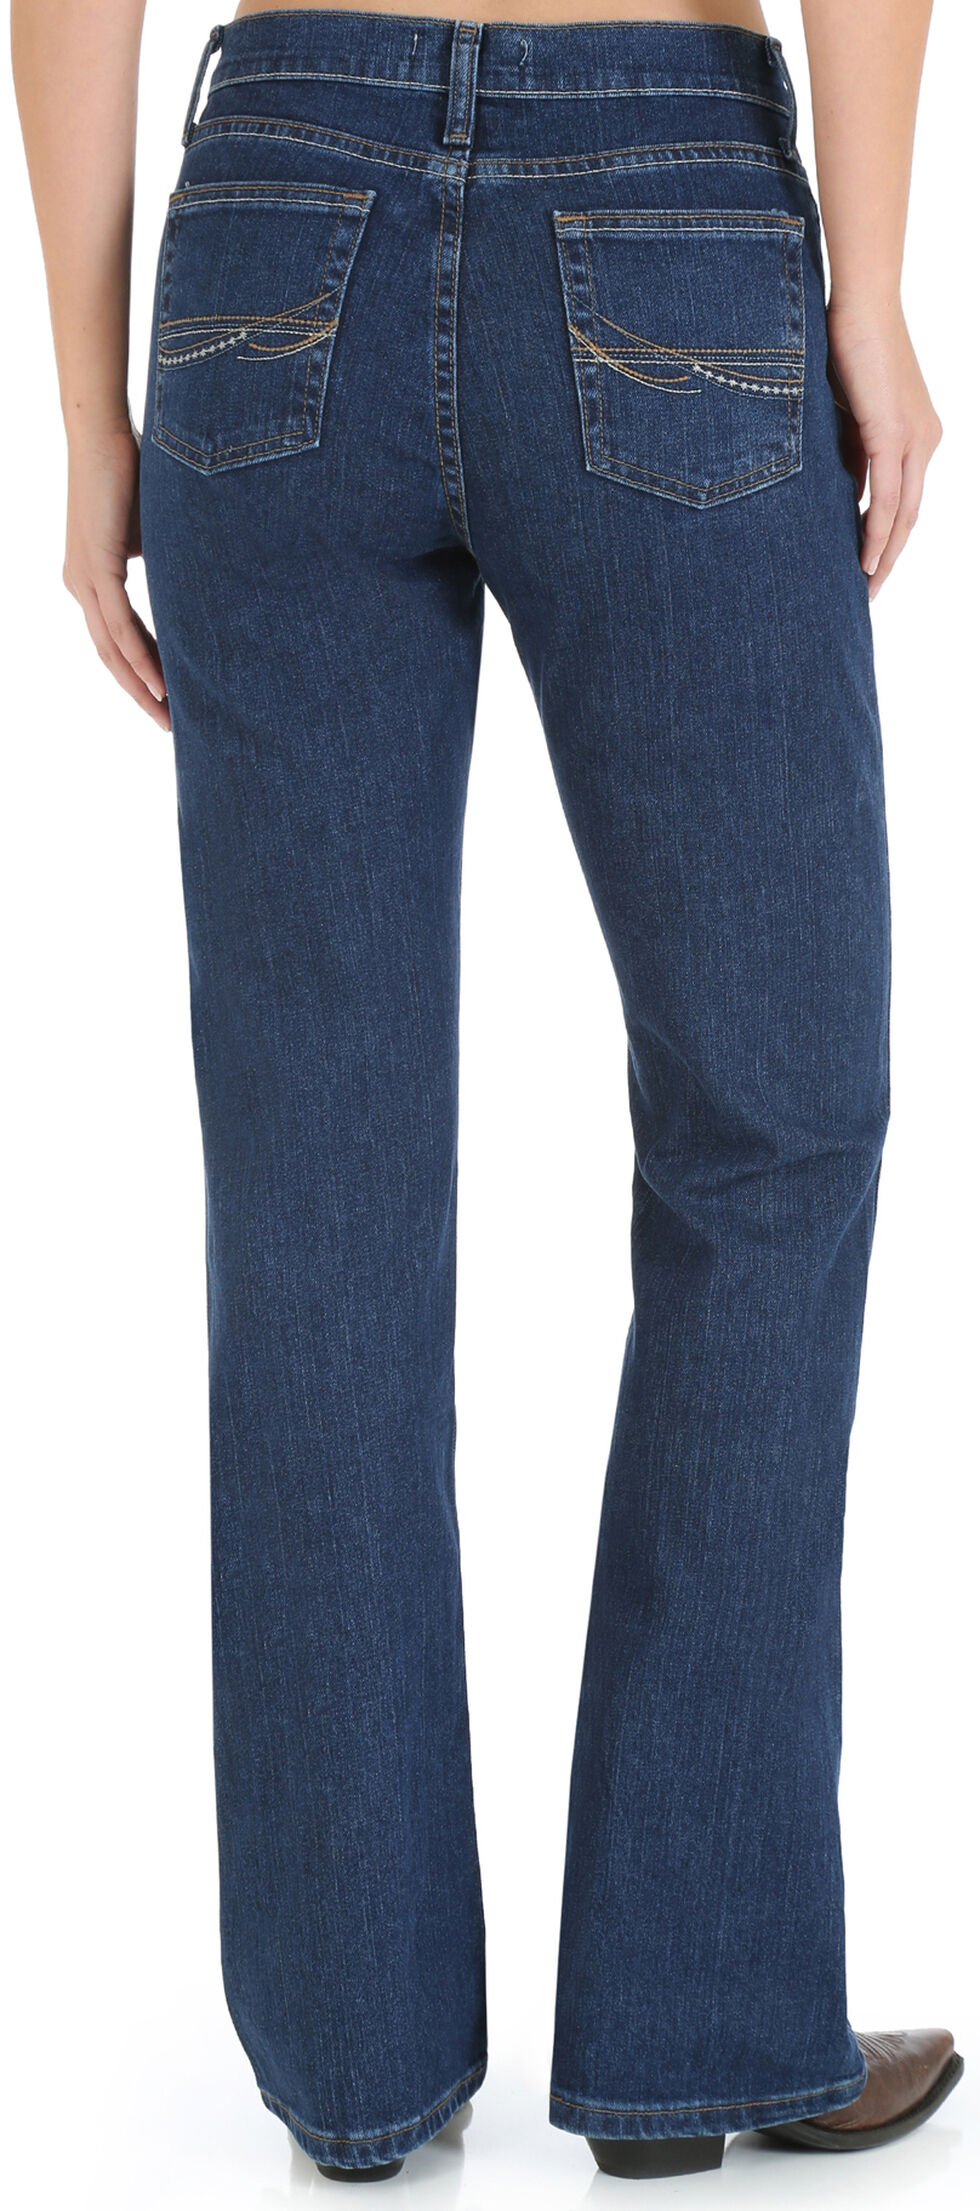 Wrangler Women's As Real As Classic Fit Boot Cut Jeans, Denim, hi-res